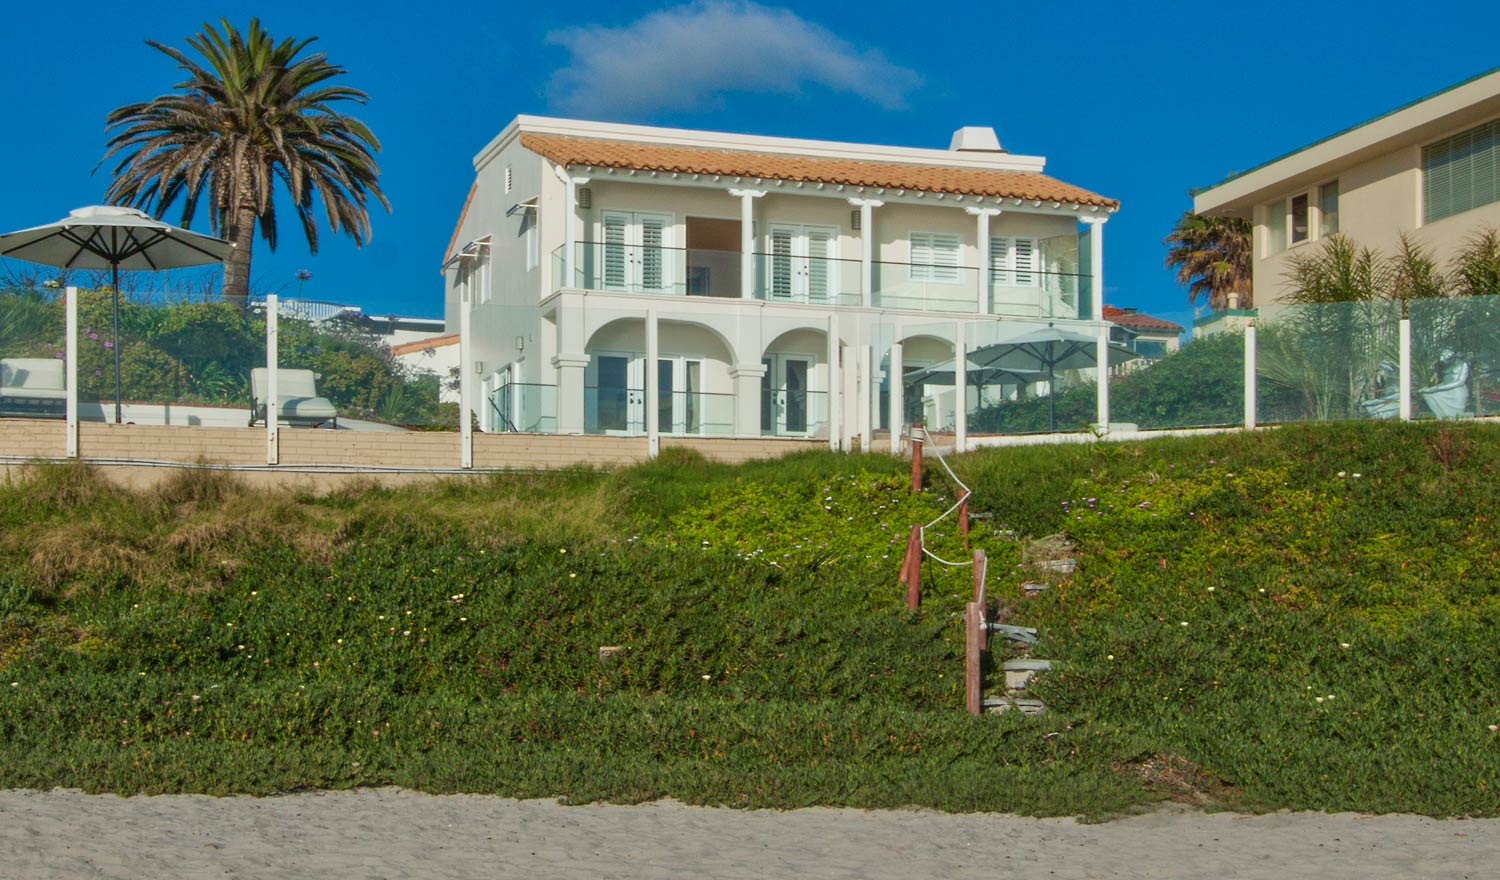 Villa Paradise is a rare find with two legal parcels including a 4,900 sq.ft. (approx.) home plus one legal lot of 29' beach frontage. It is the only property on the market with beach access and a pool/spa.